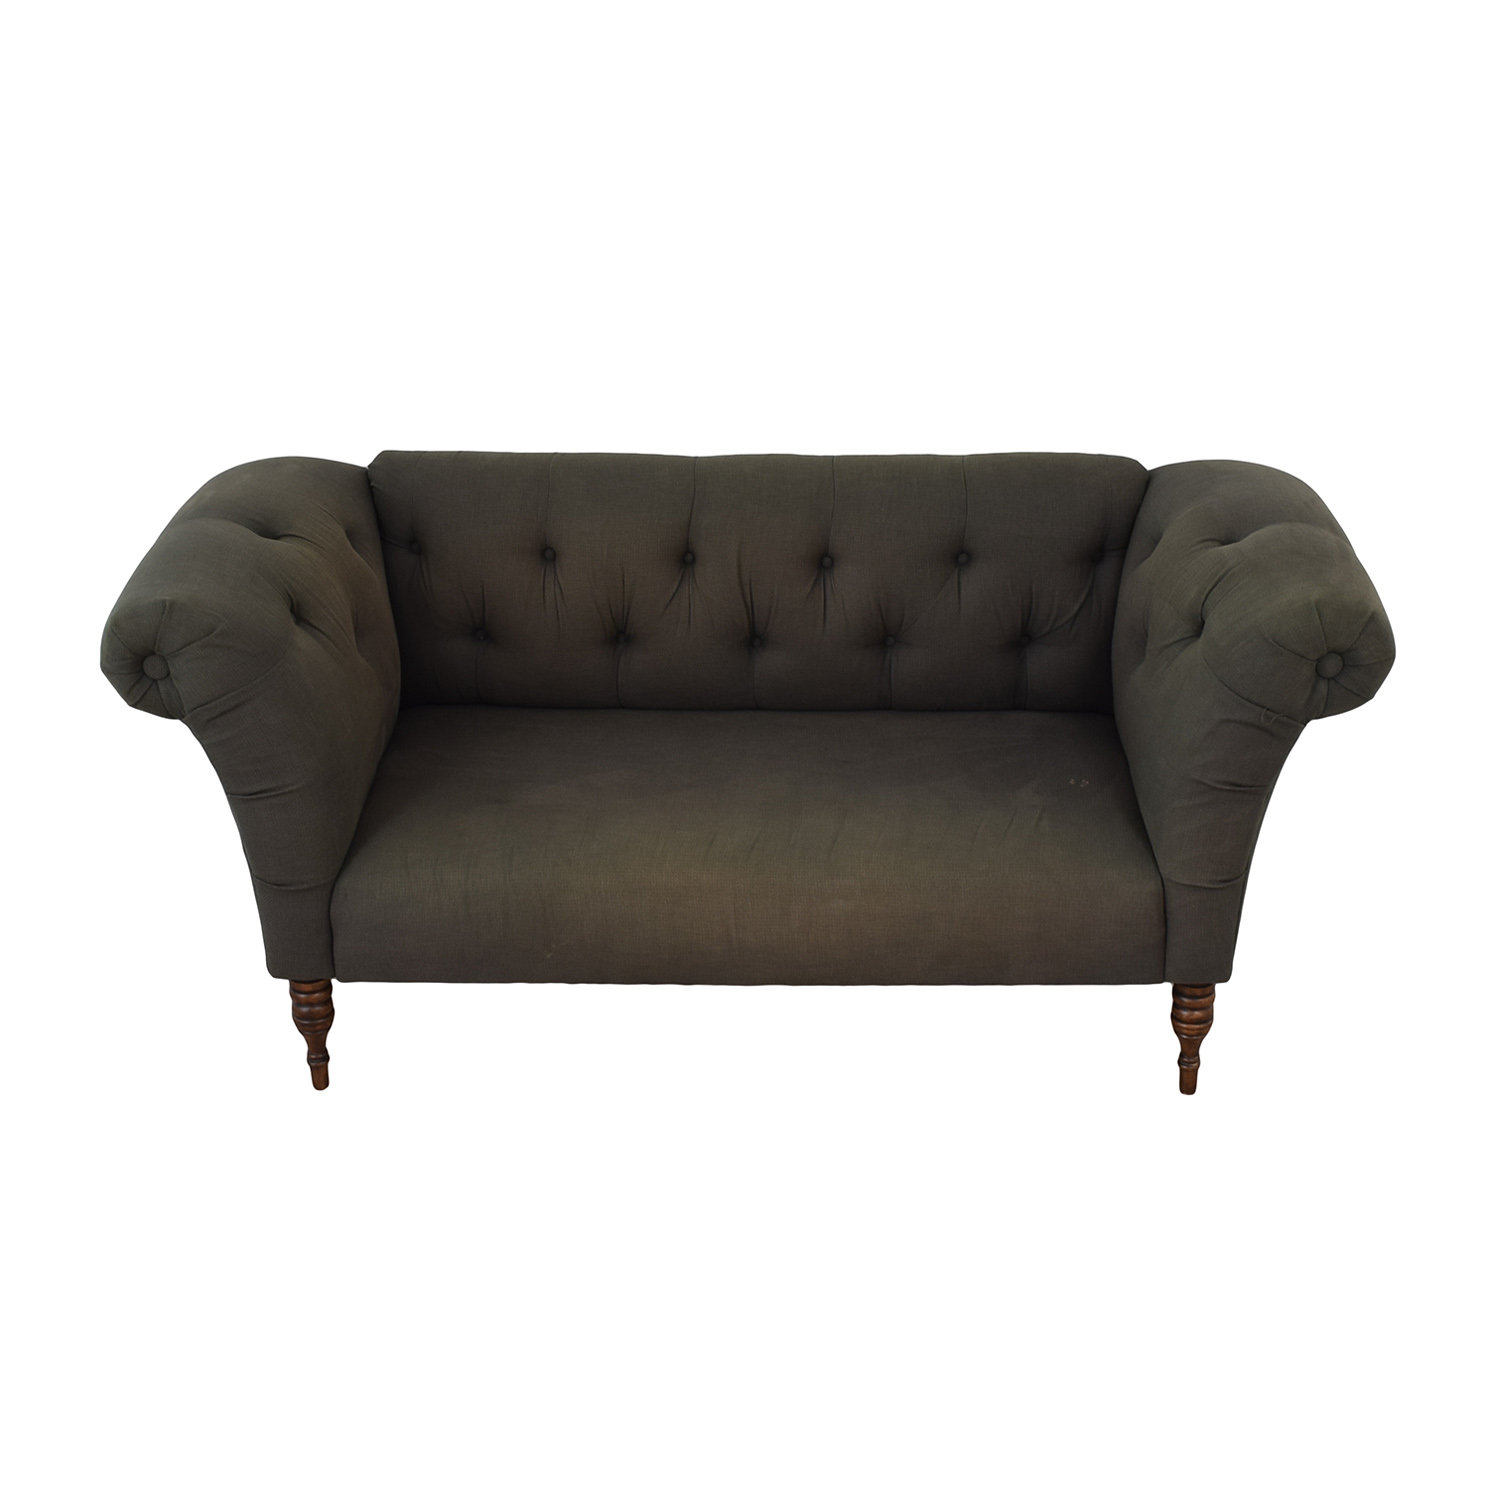 Urban Outfitters Grey Tufted Sofa sale